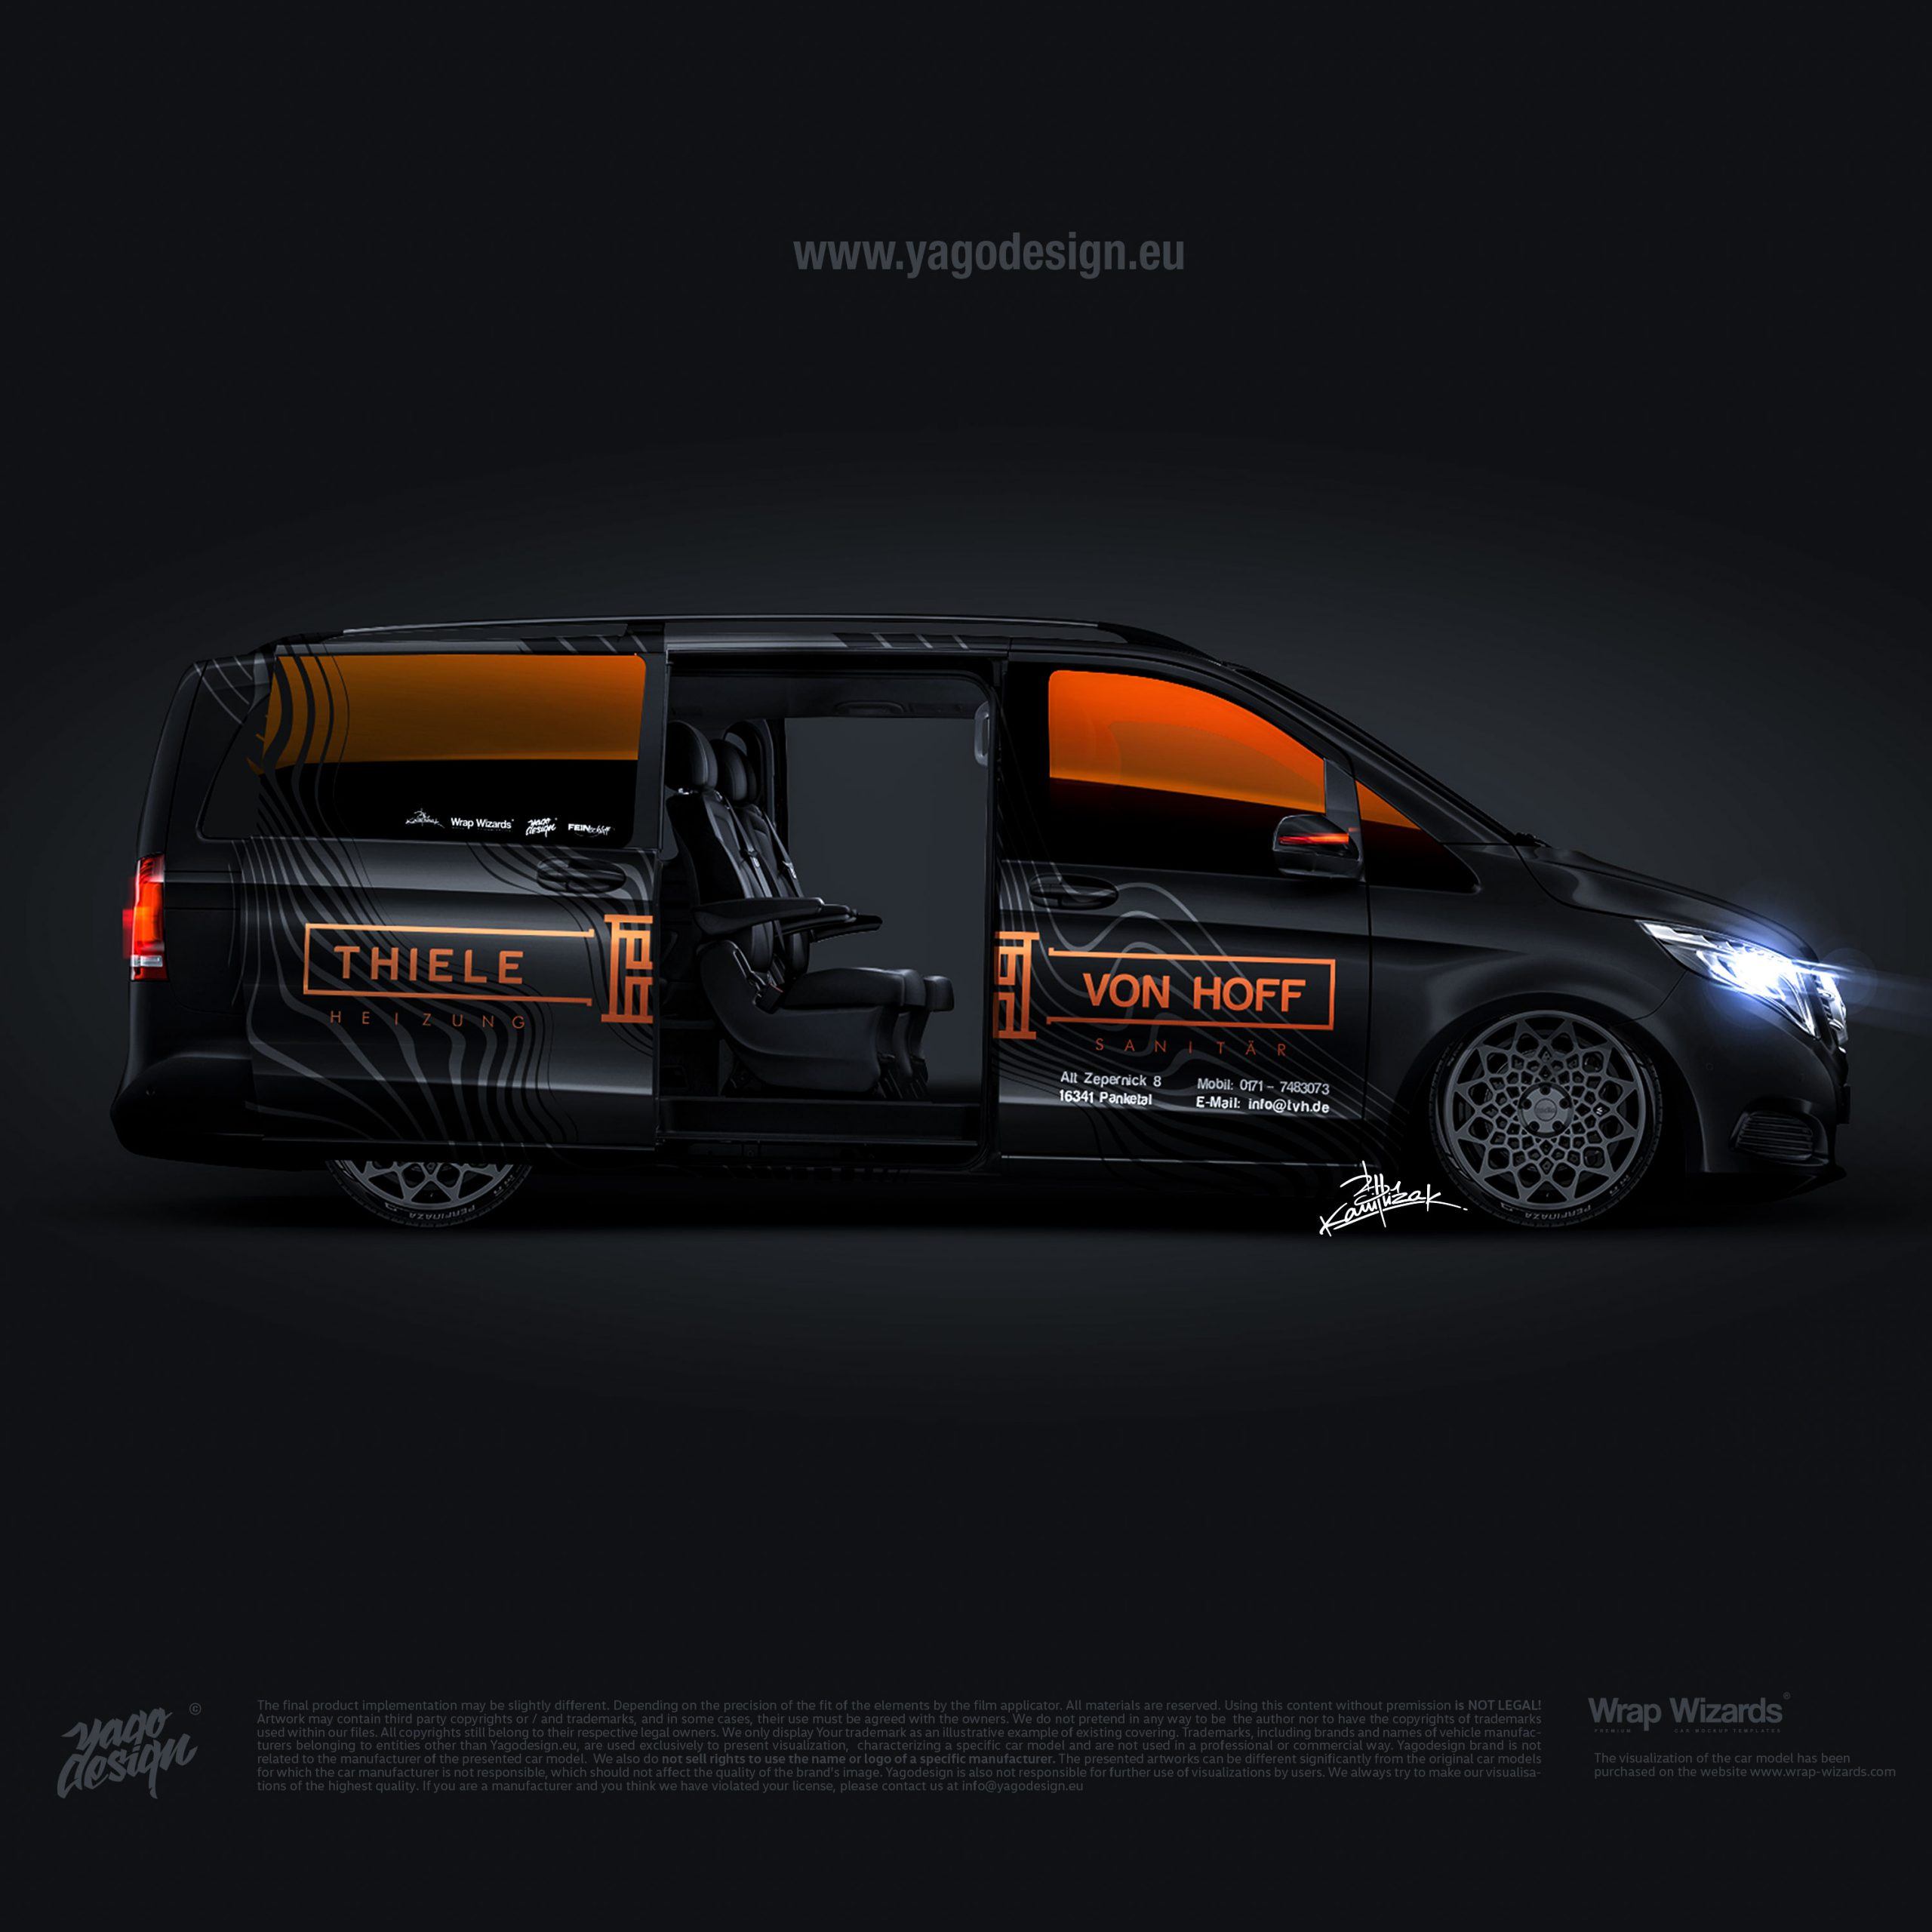 Mercedes-Benz-Vito-2020-by-Yagodesign-Automotive-Design-Studio2-scaled